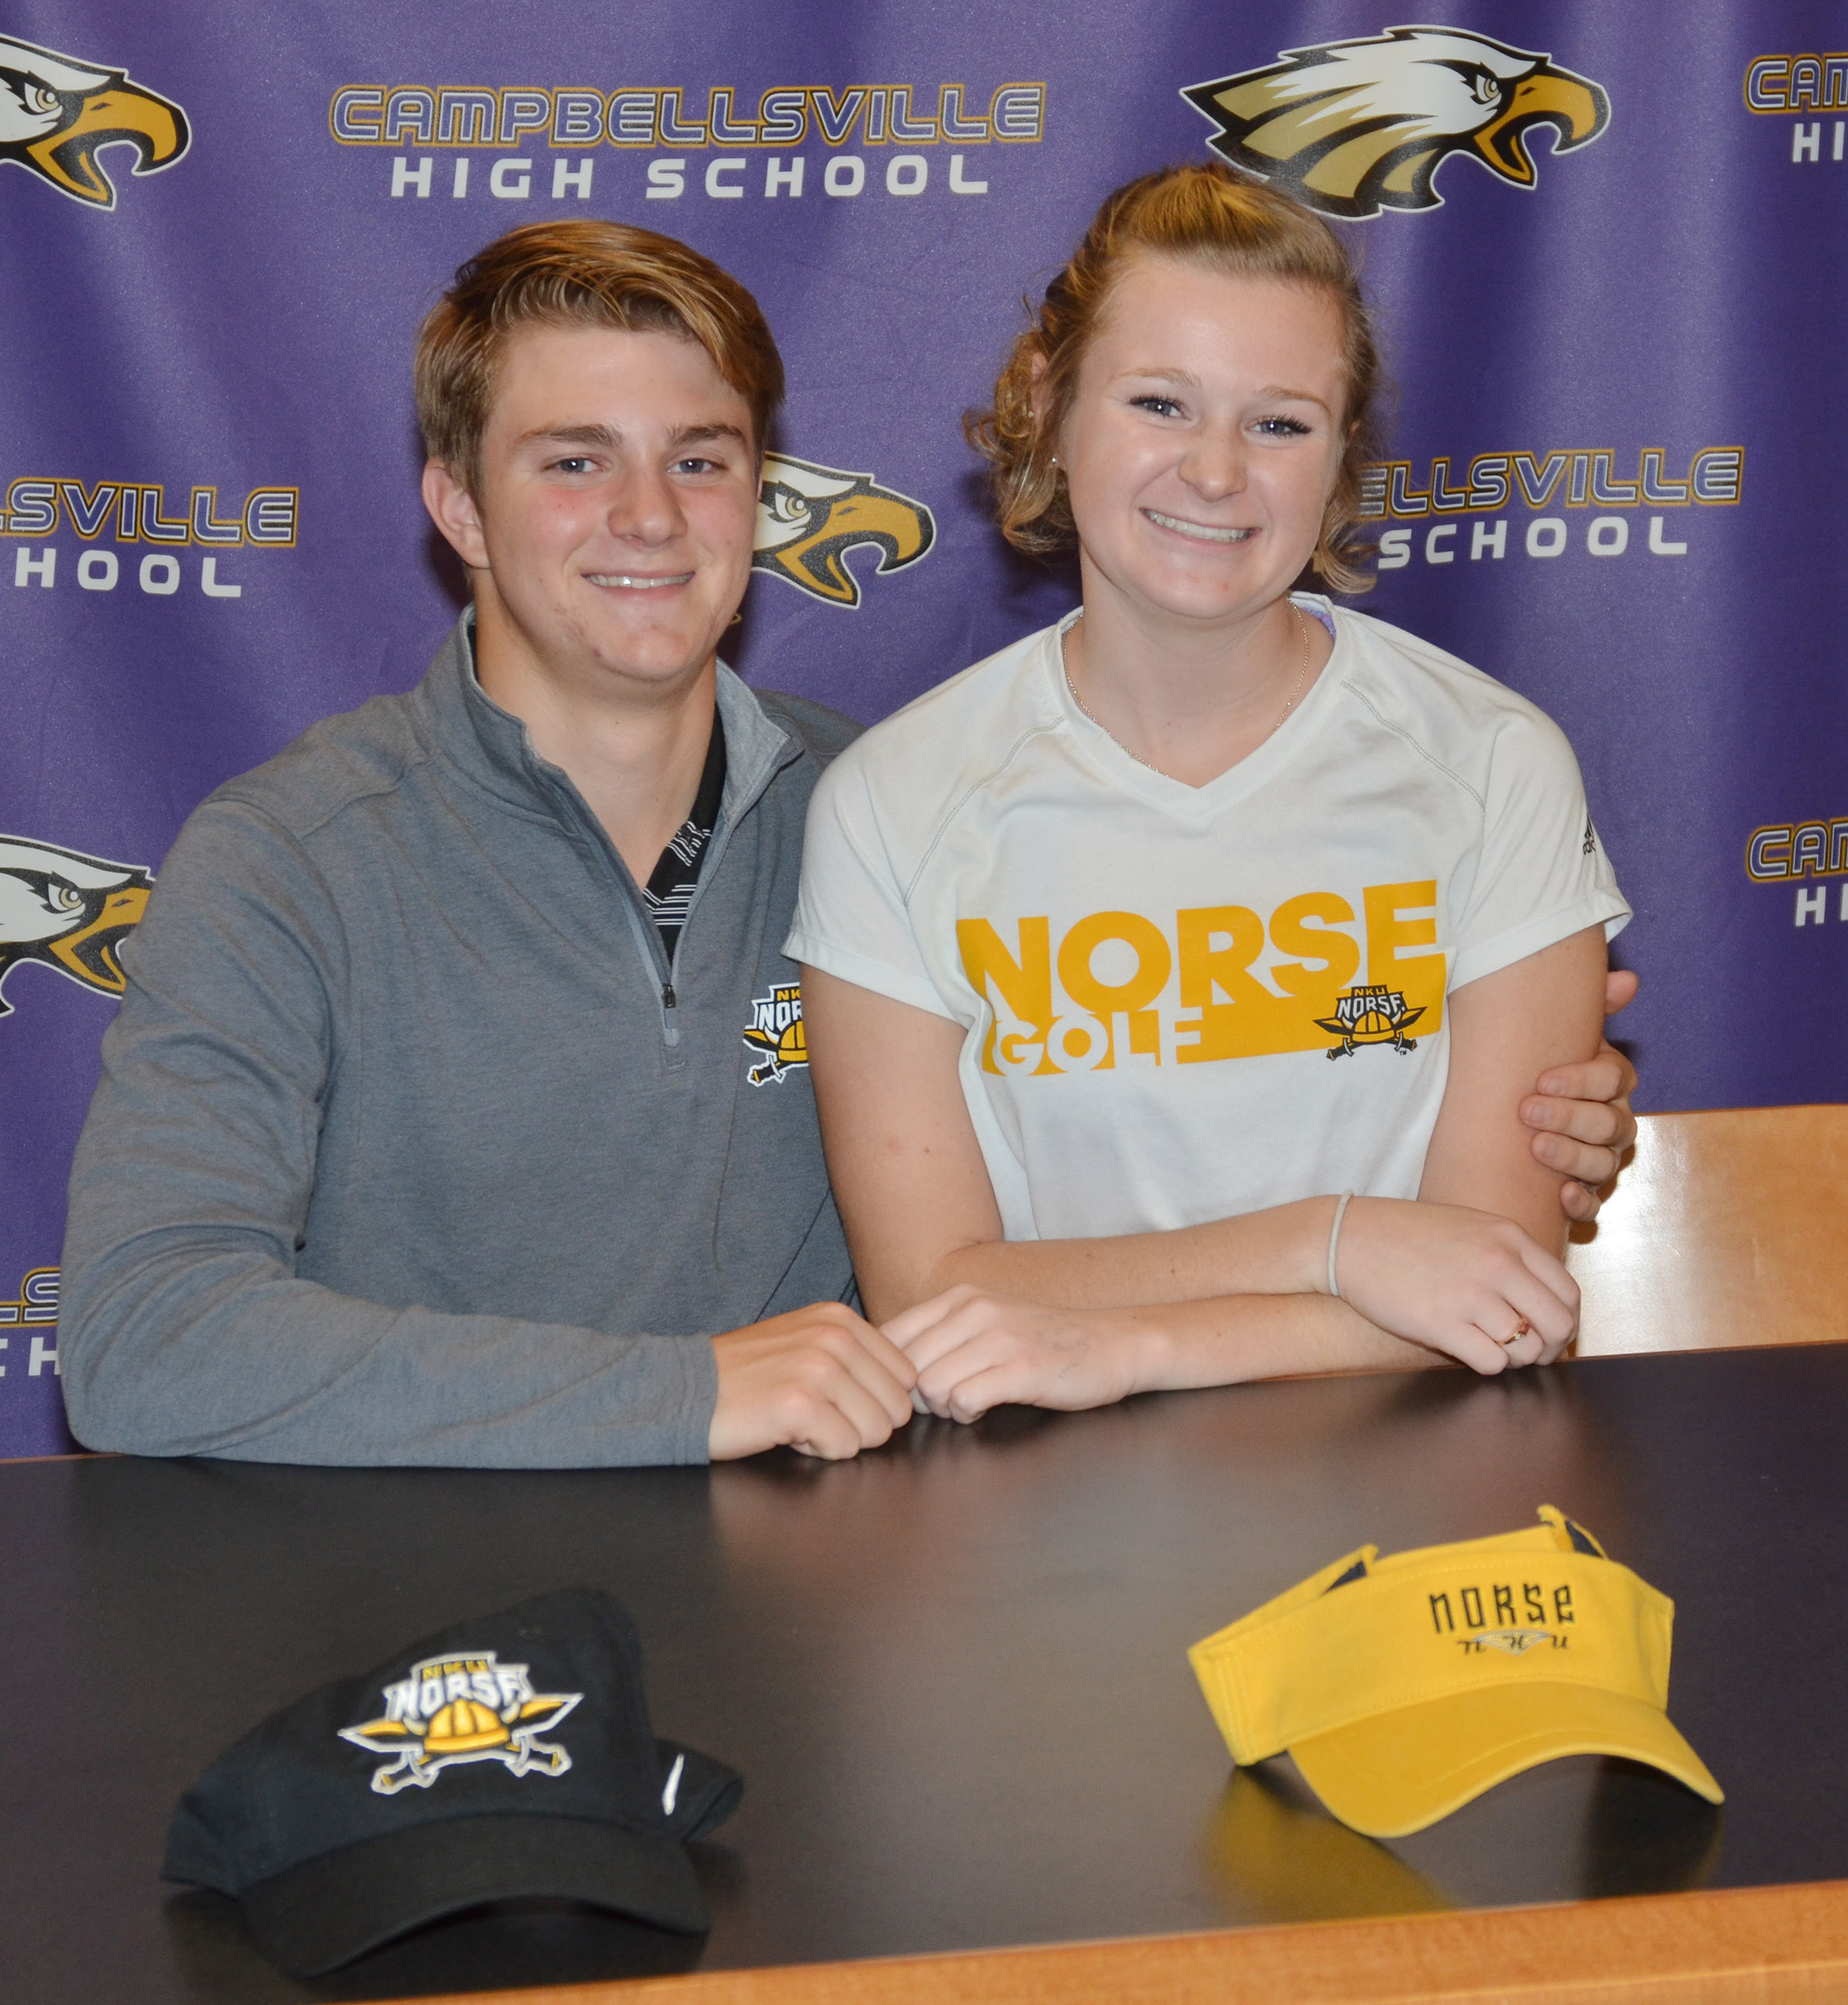 CHS boys' golf player Alex Doss will continue his academic and athletic career at Northern Kentucky University. He recently celebrated the announcement in a reception with his family and friends. Pictured with Doss are his sister, Kathryn, who also attends NKU and plays golf.